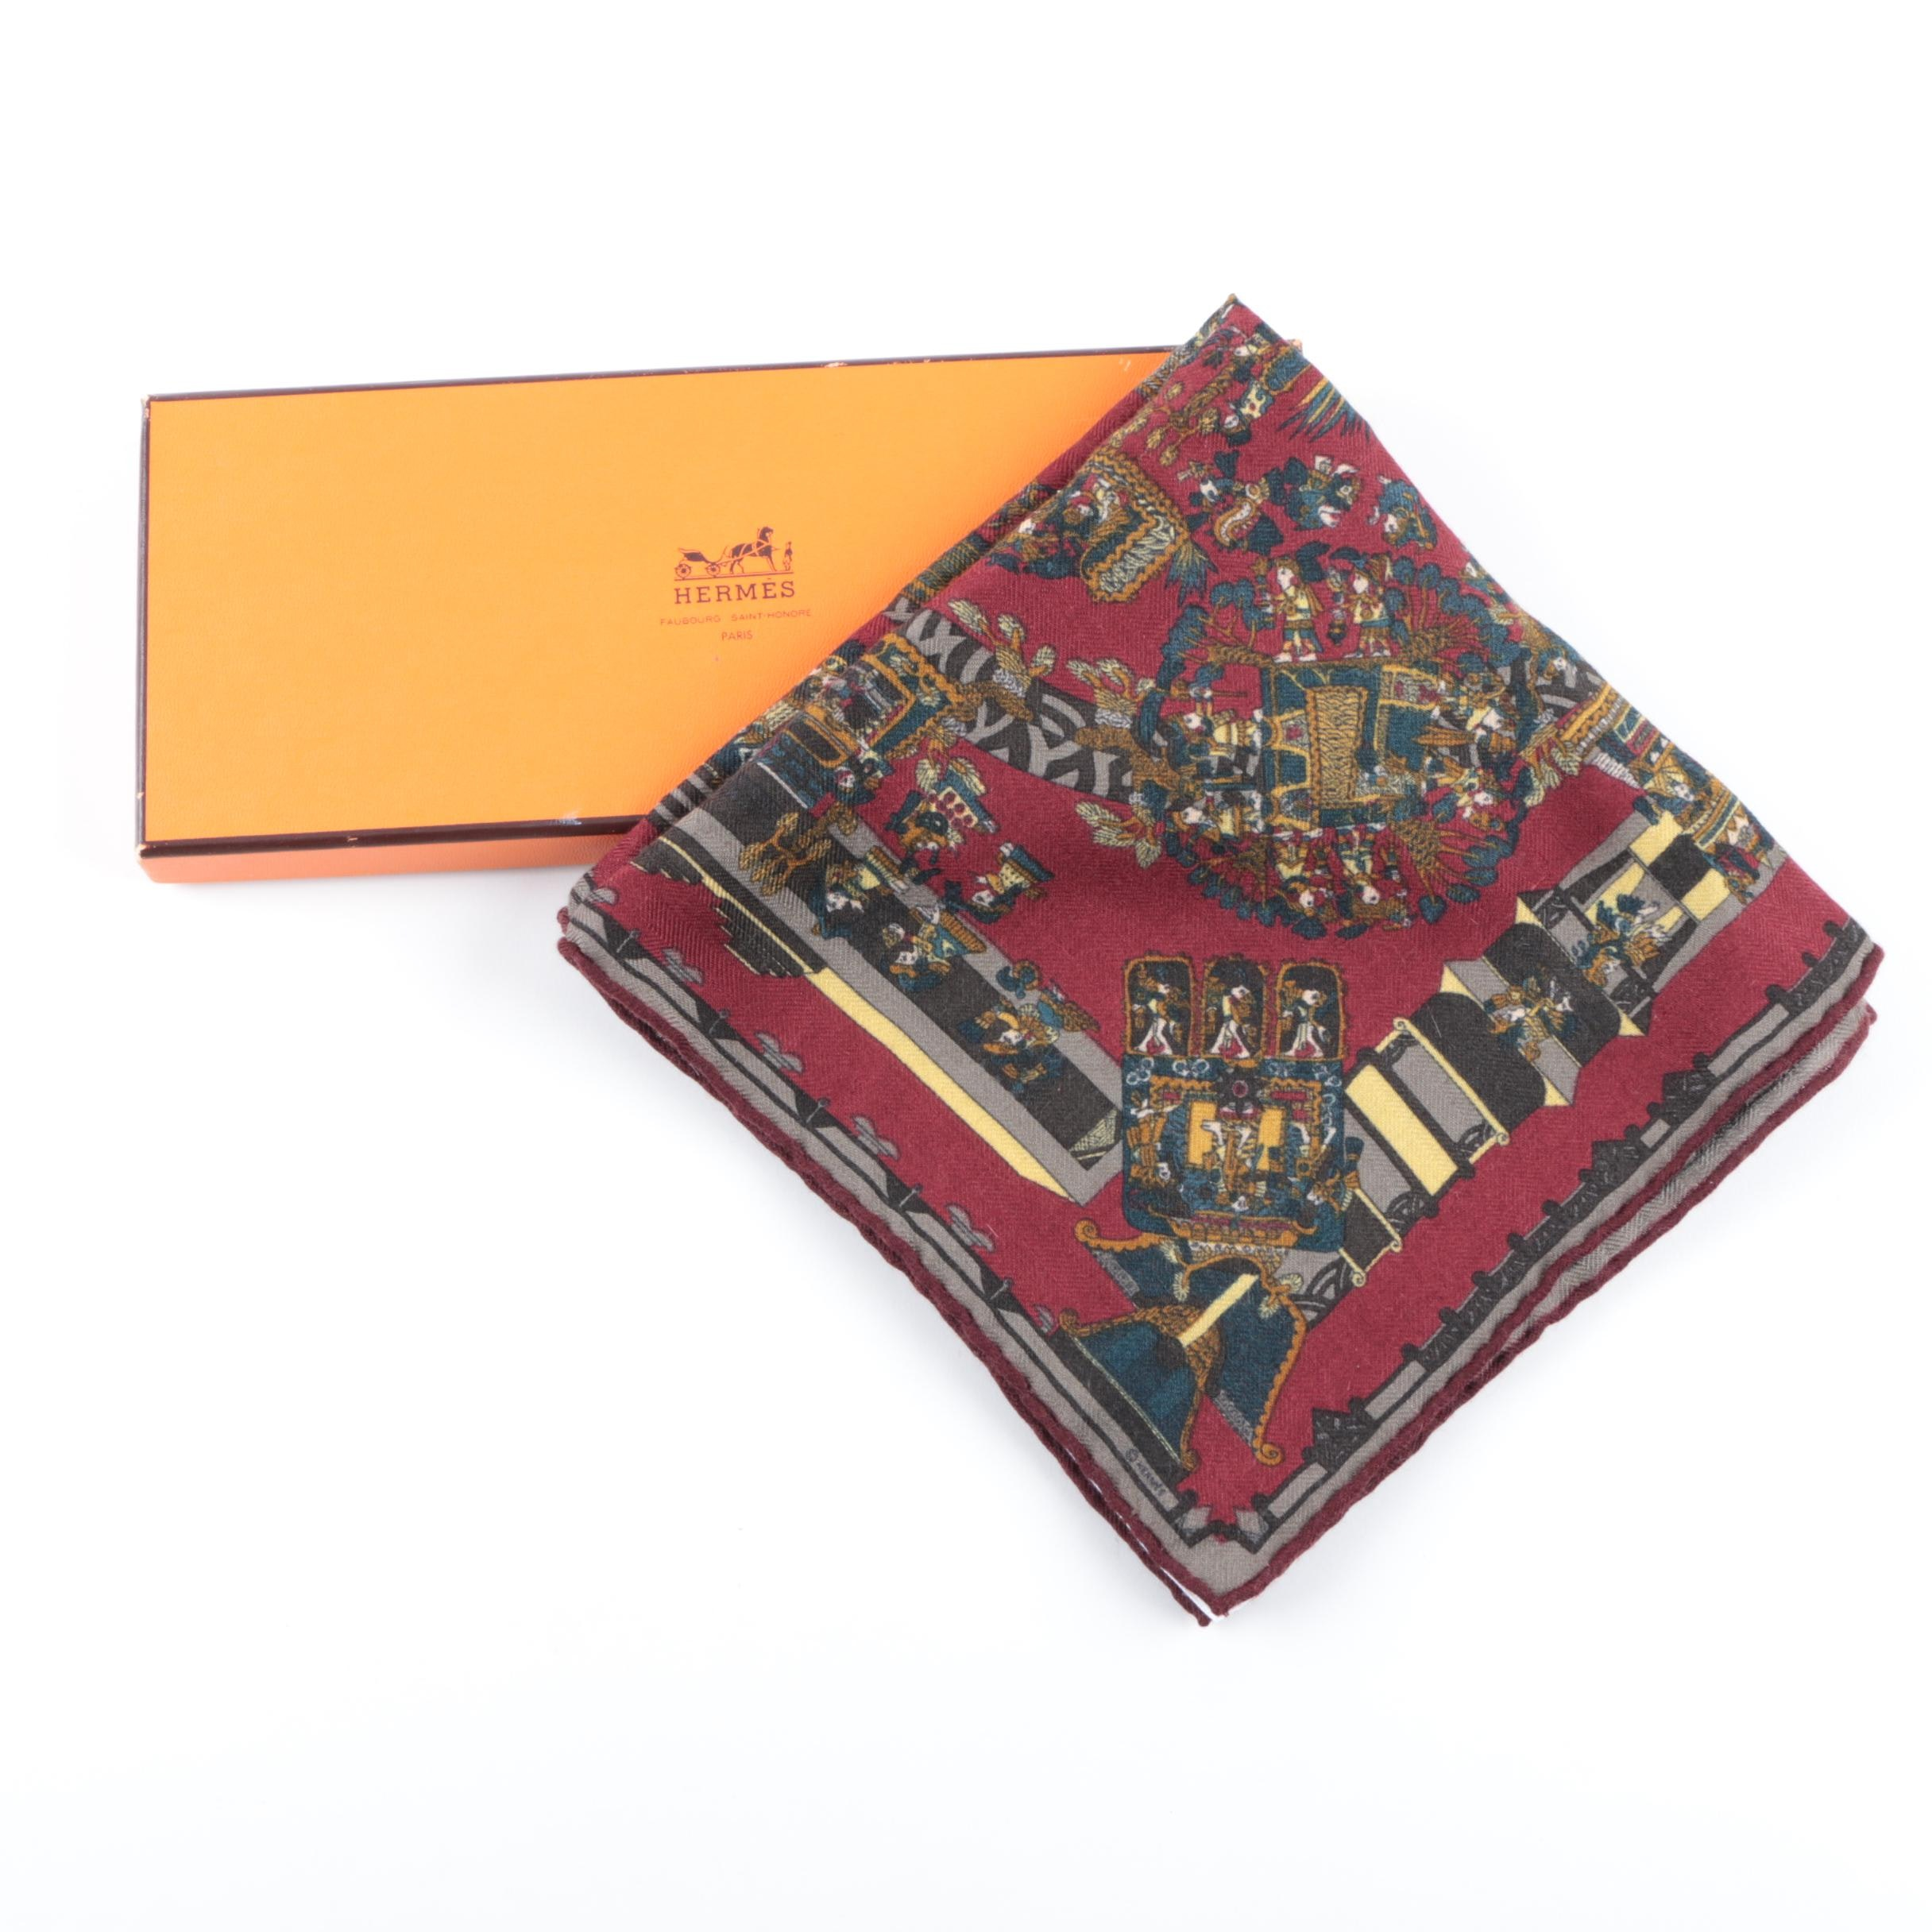 Hermès of Paris Cashmere and Silk Woven Pocket Square with Box